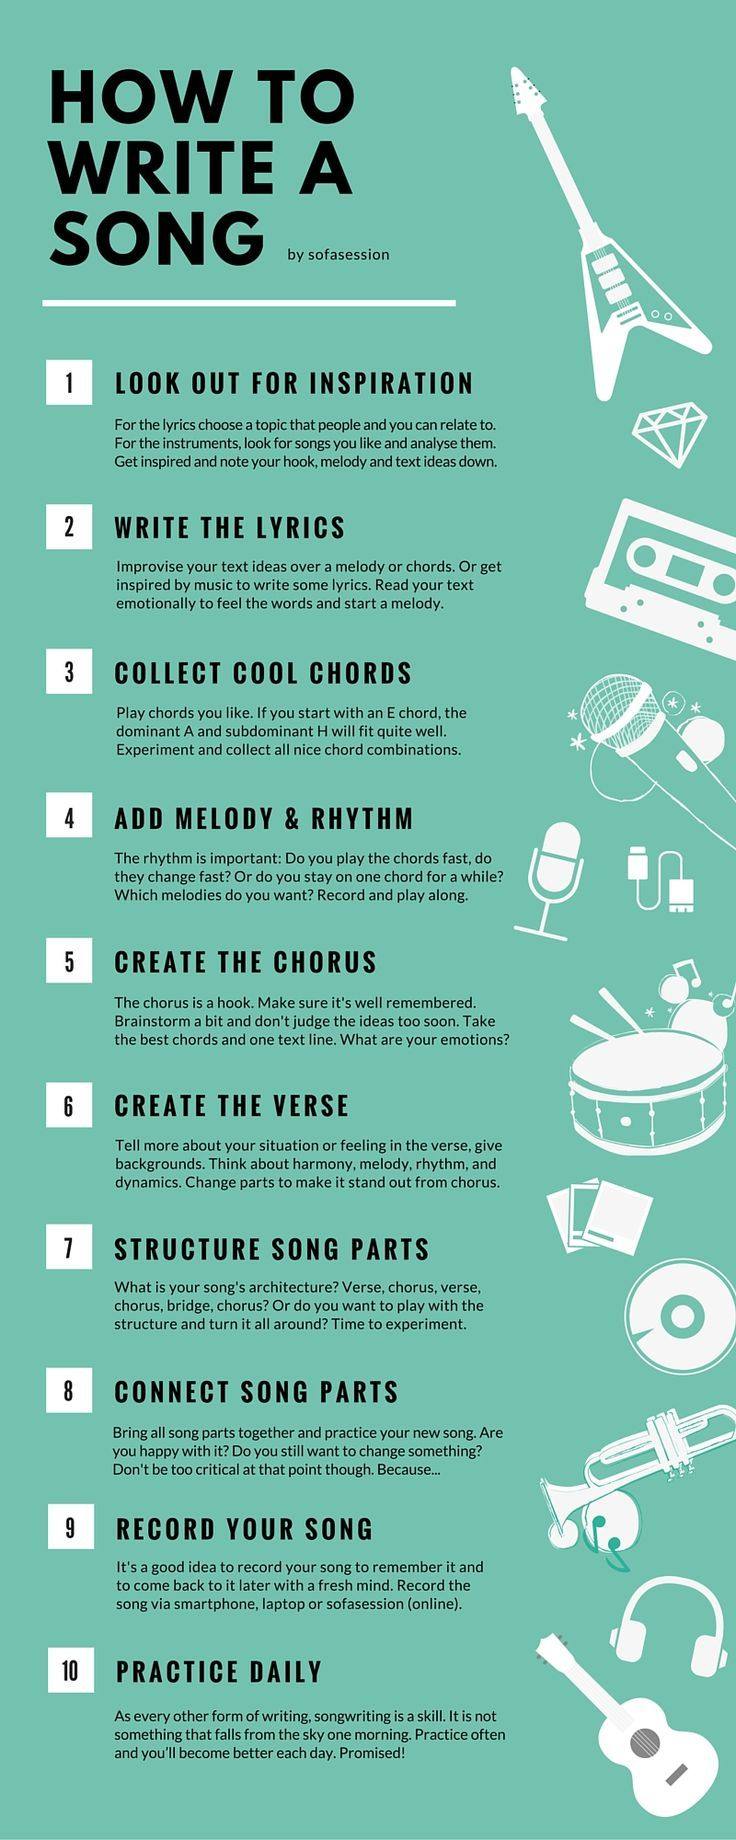 writing a song online Write song lyrics how to write lyricswriting lyricsmusic writingguitar songs music songsacoustic guitarsong lyricsschoolsweet how to write song lyrics ( with sample lyrics) - wikihow tips :).